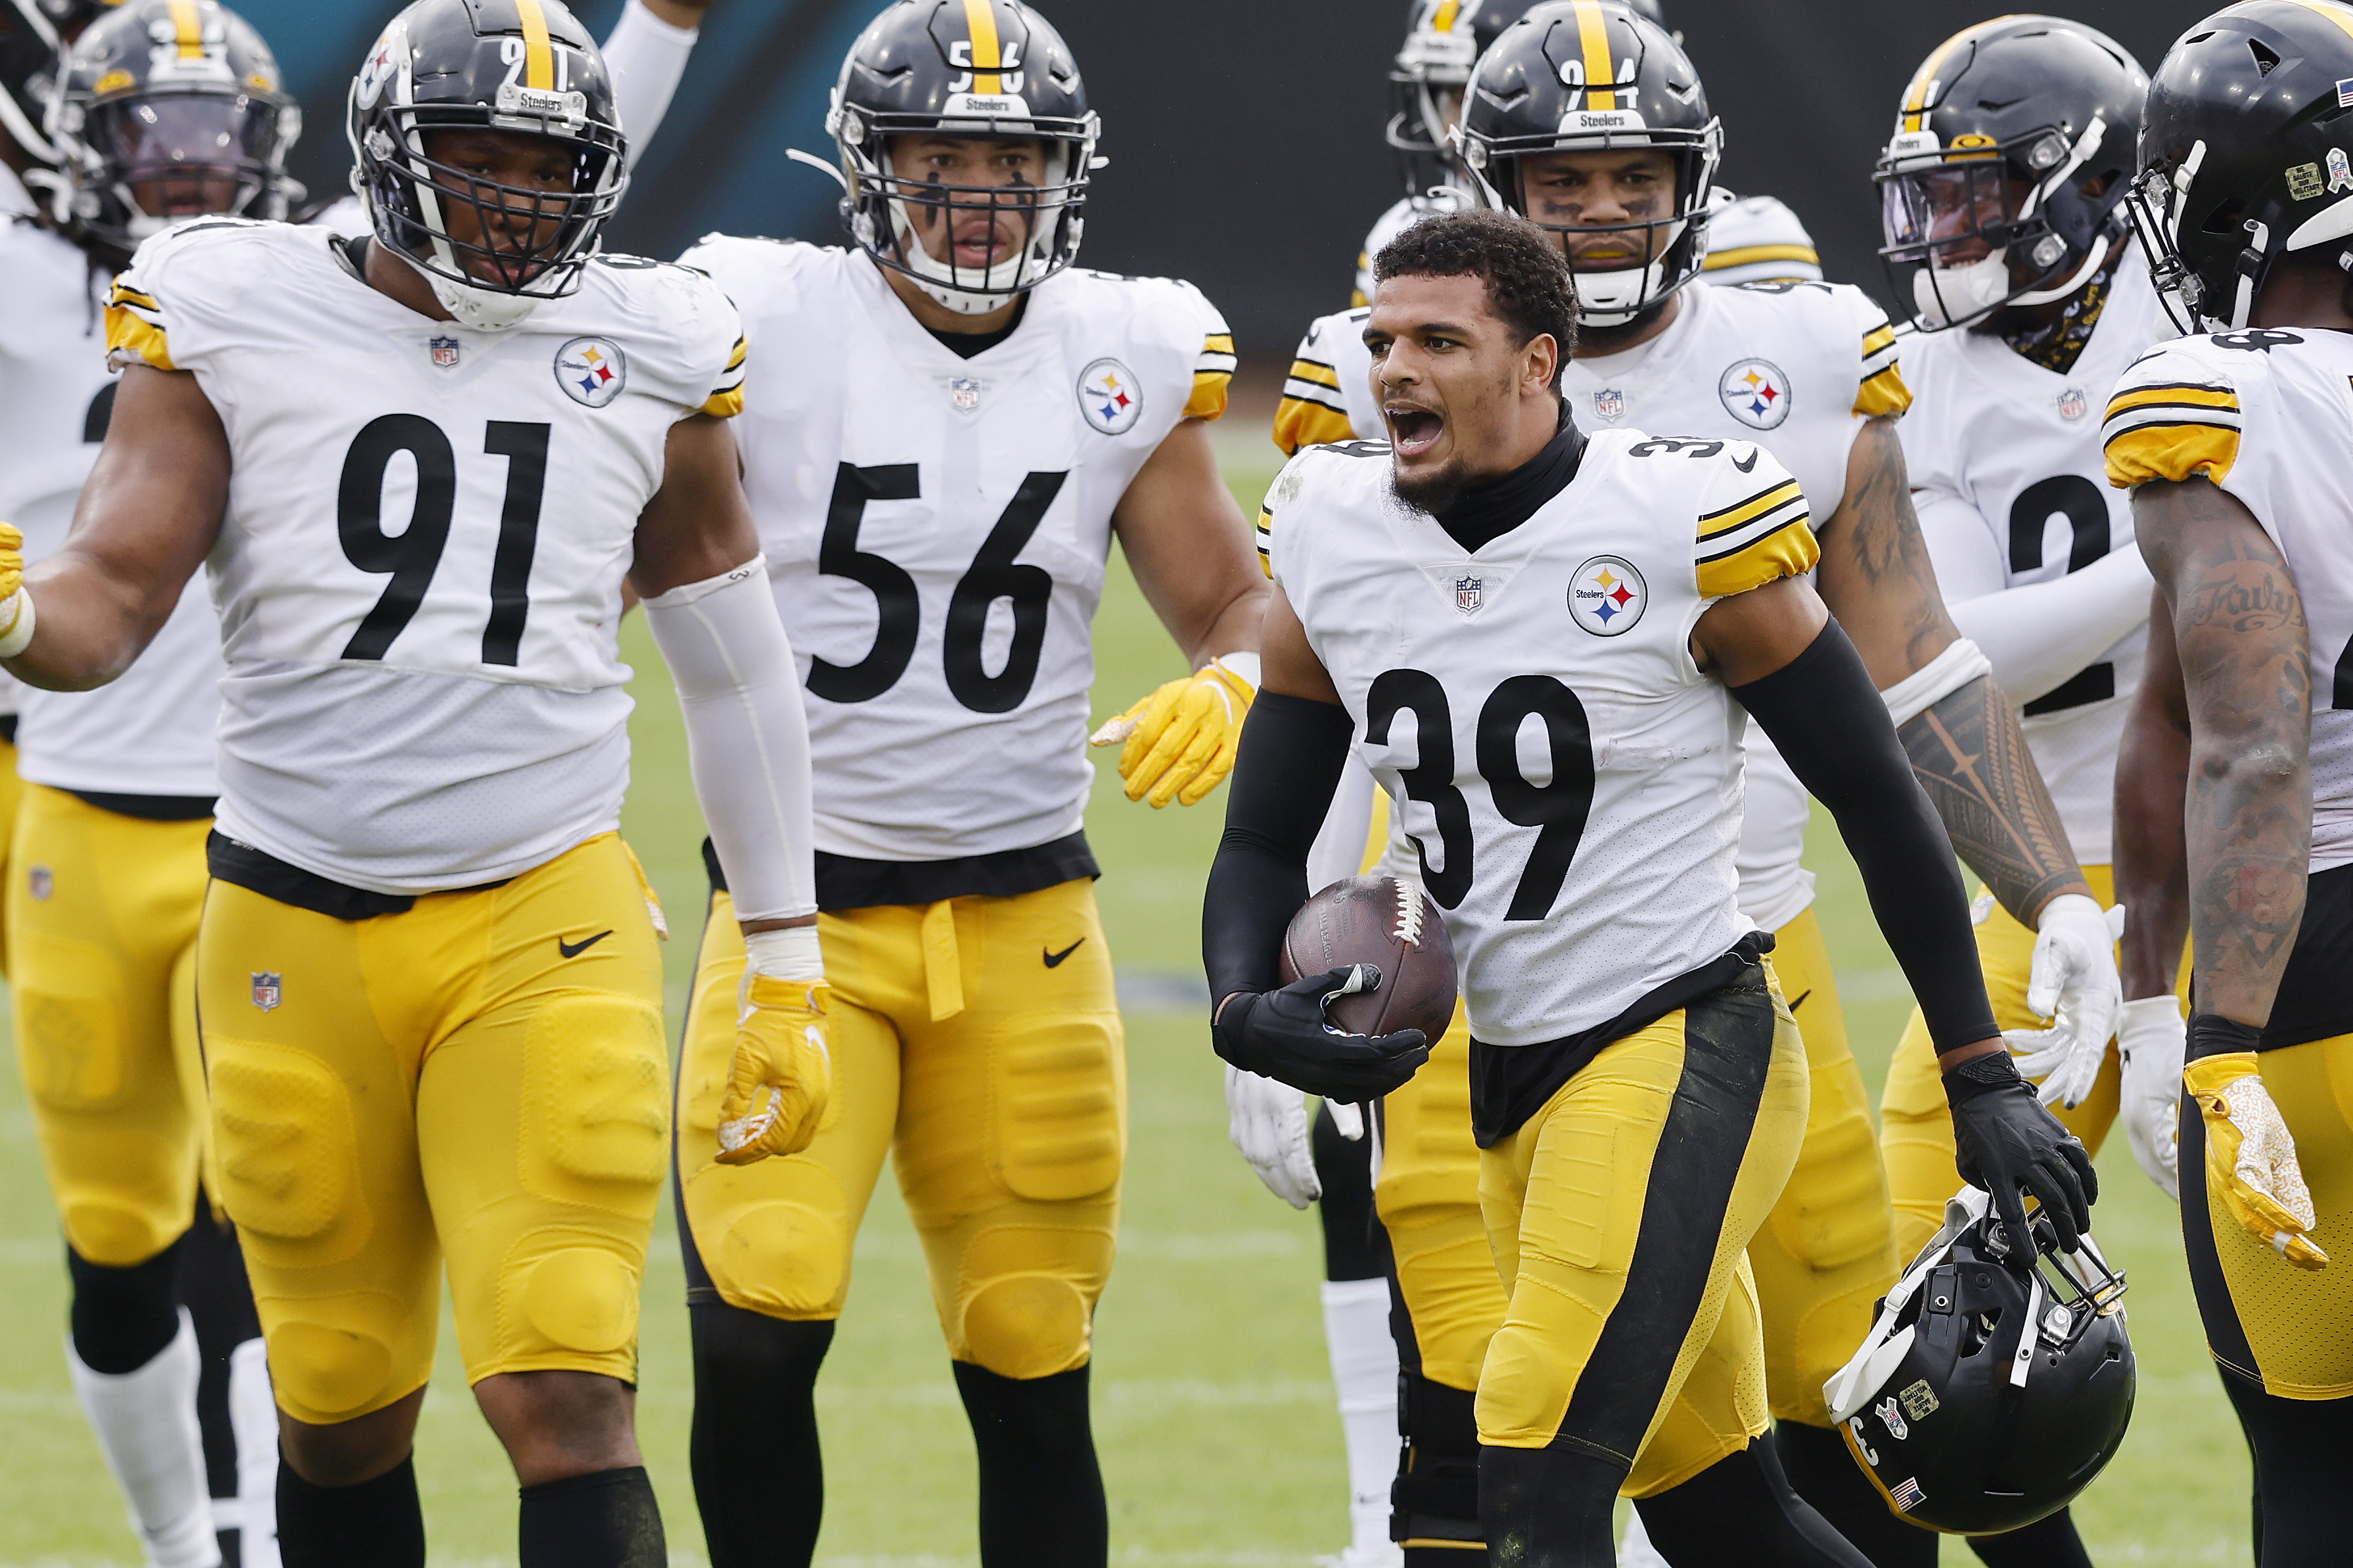 Why are the Pittsburgh Steelers and Baltimore Ravens playing in the afternoon on Wednesday?